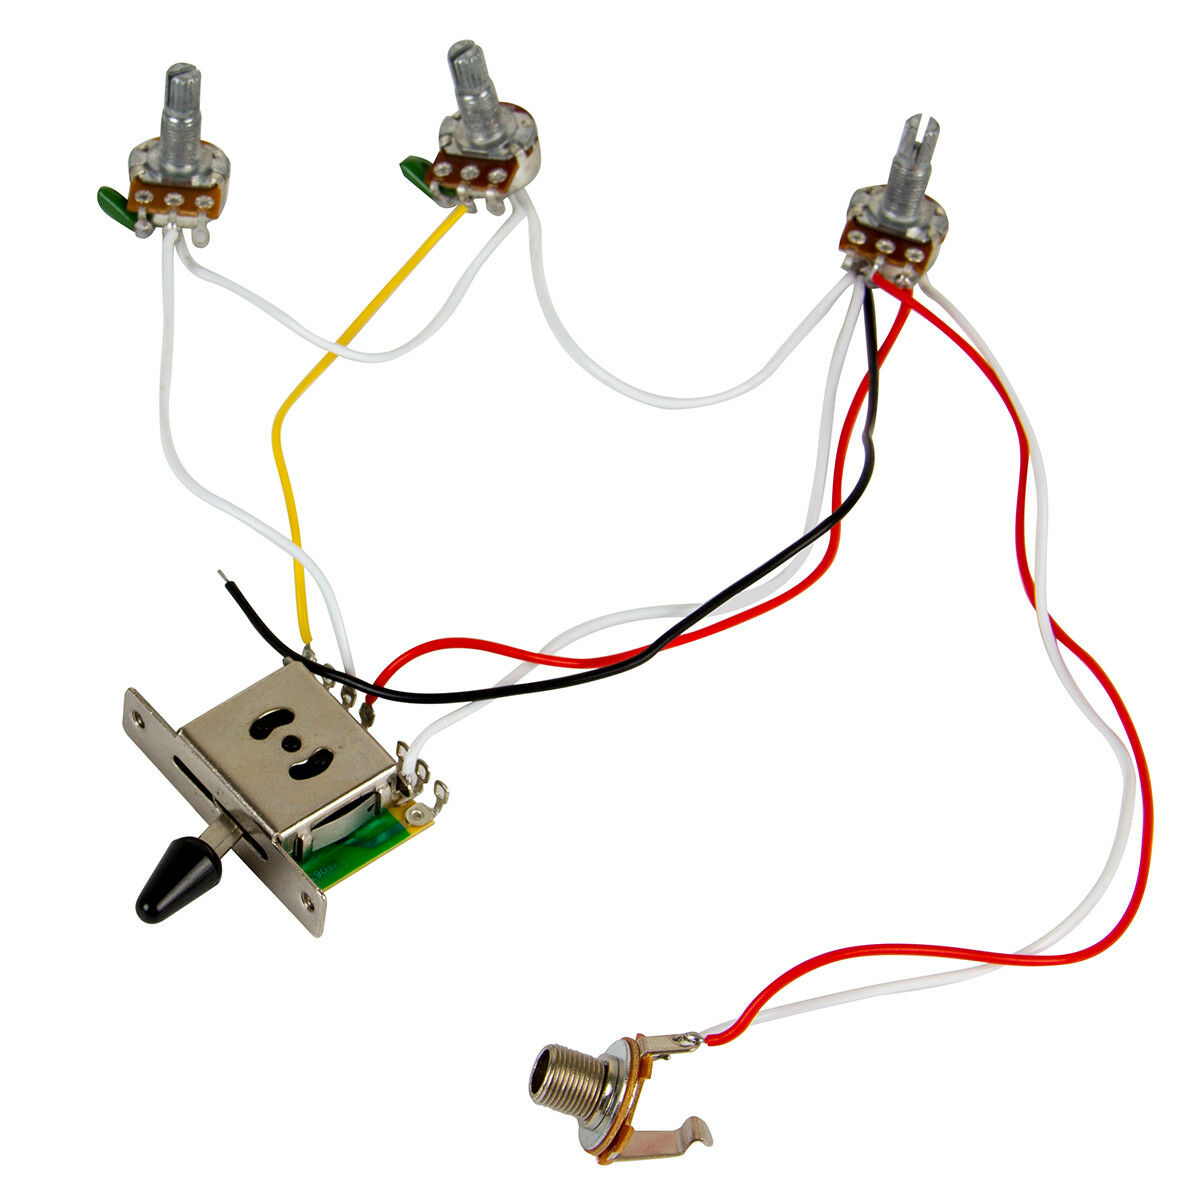 Guitar Wiring Harness Kit 5 Way Switch 500k Pots For Fender Gretsch Tone And Knob Besides Control Description